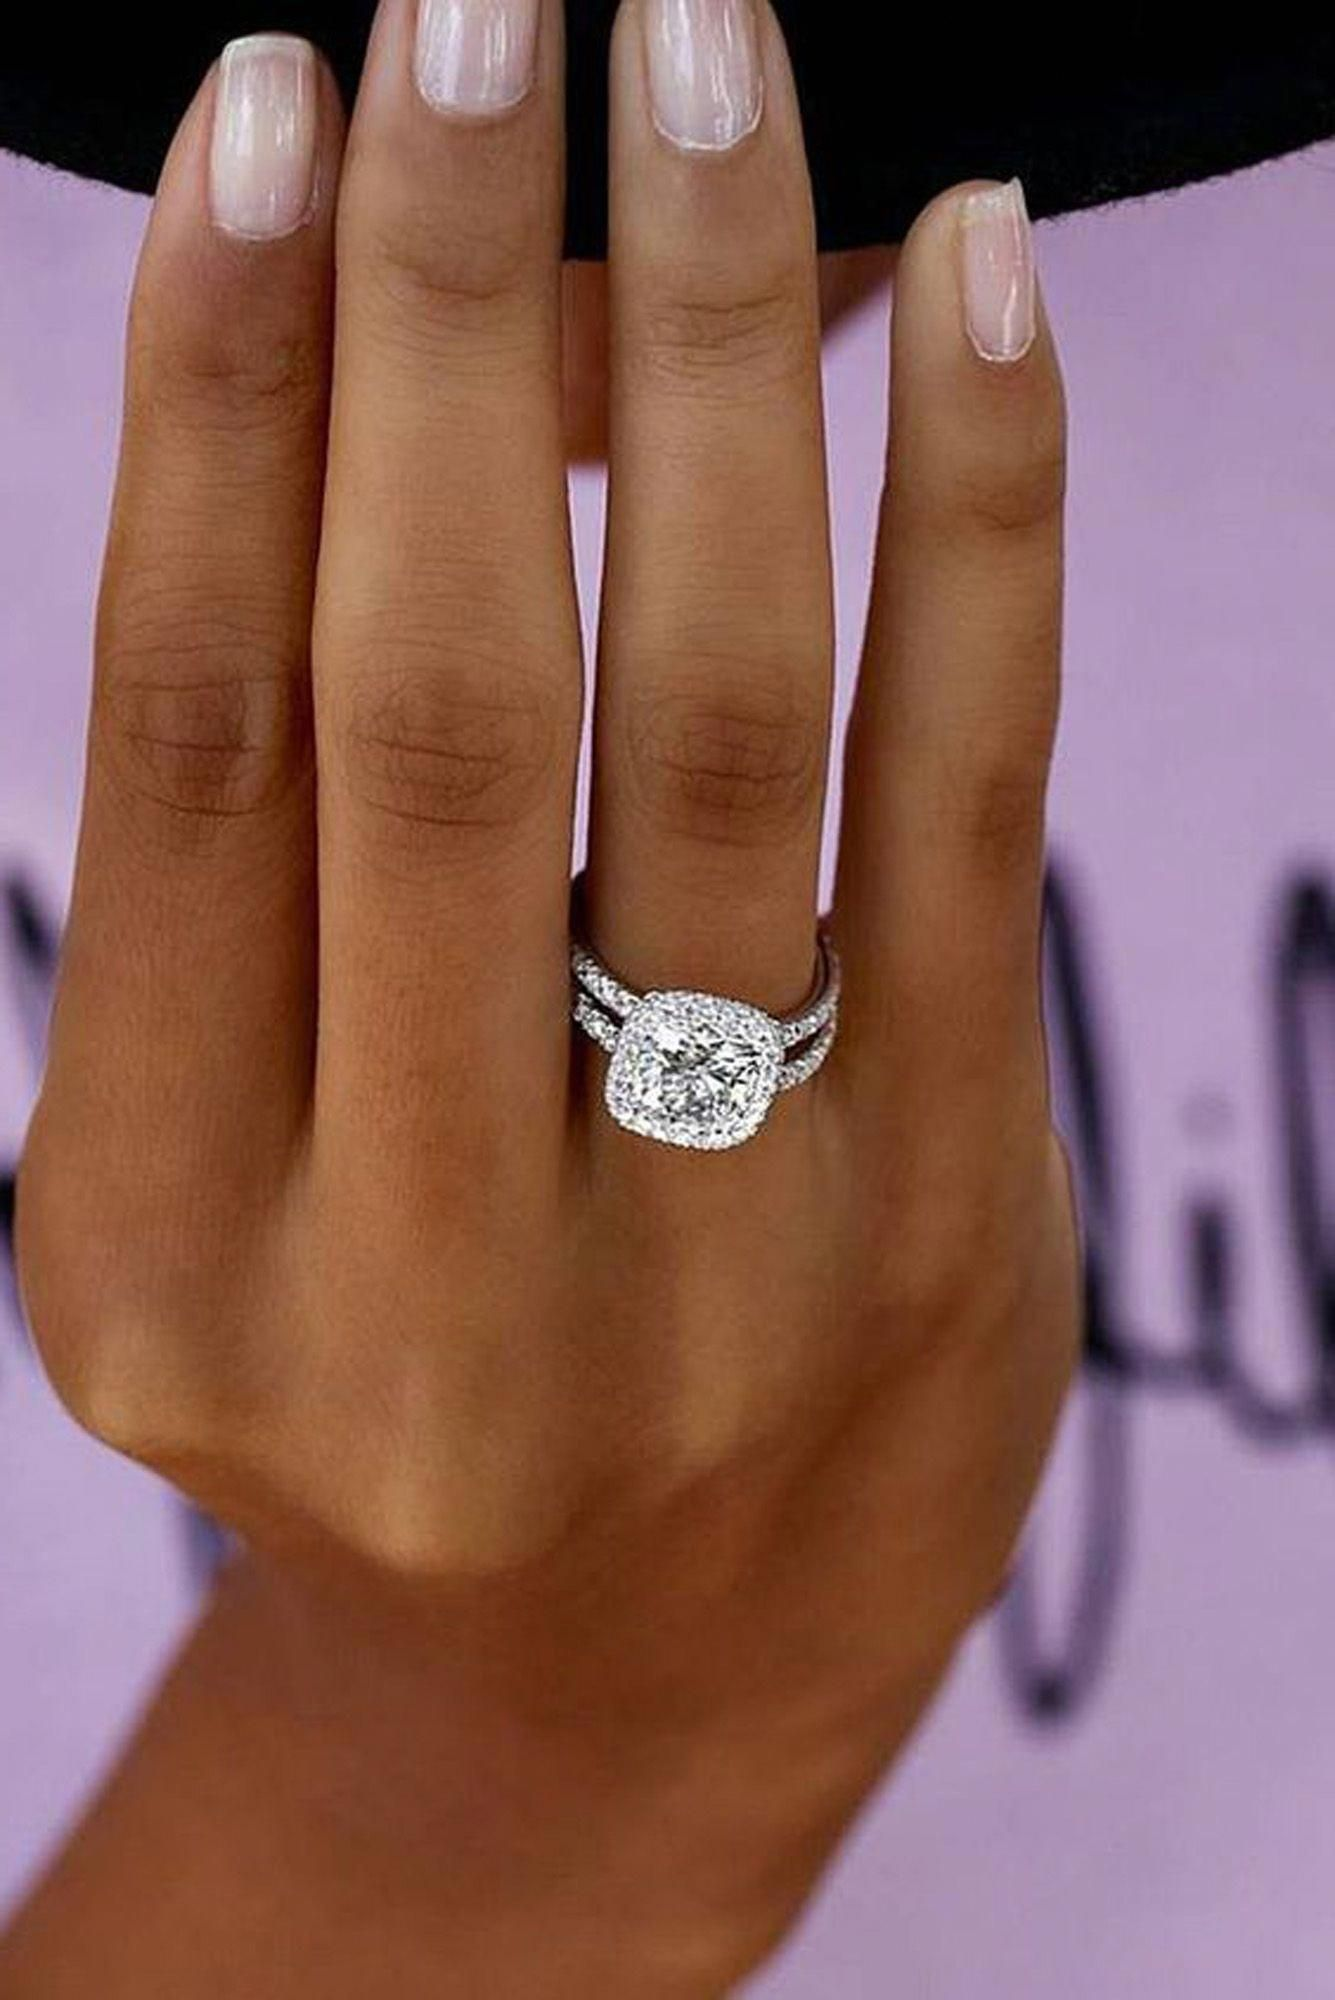 Cute Crystal Diamond Engagement Promise Graduation Rings Ring Www